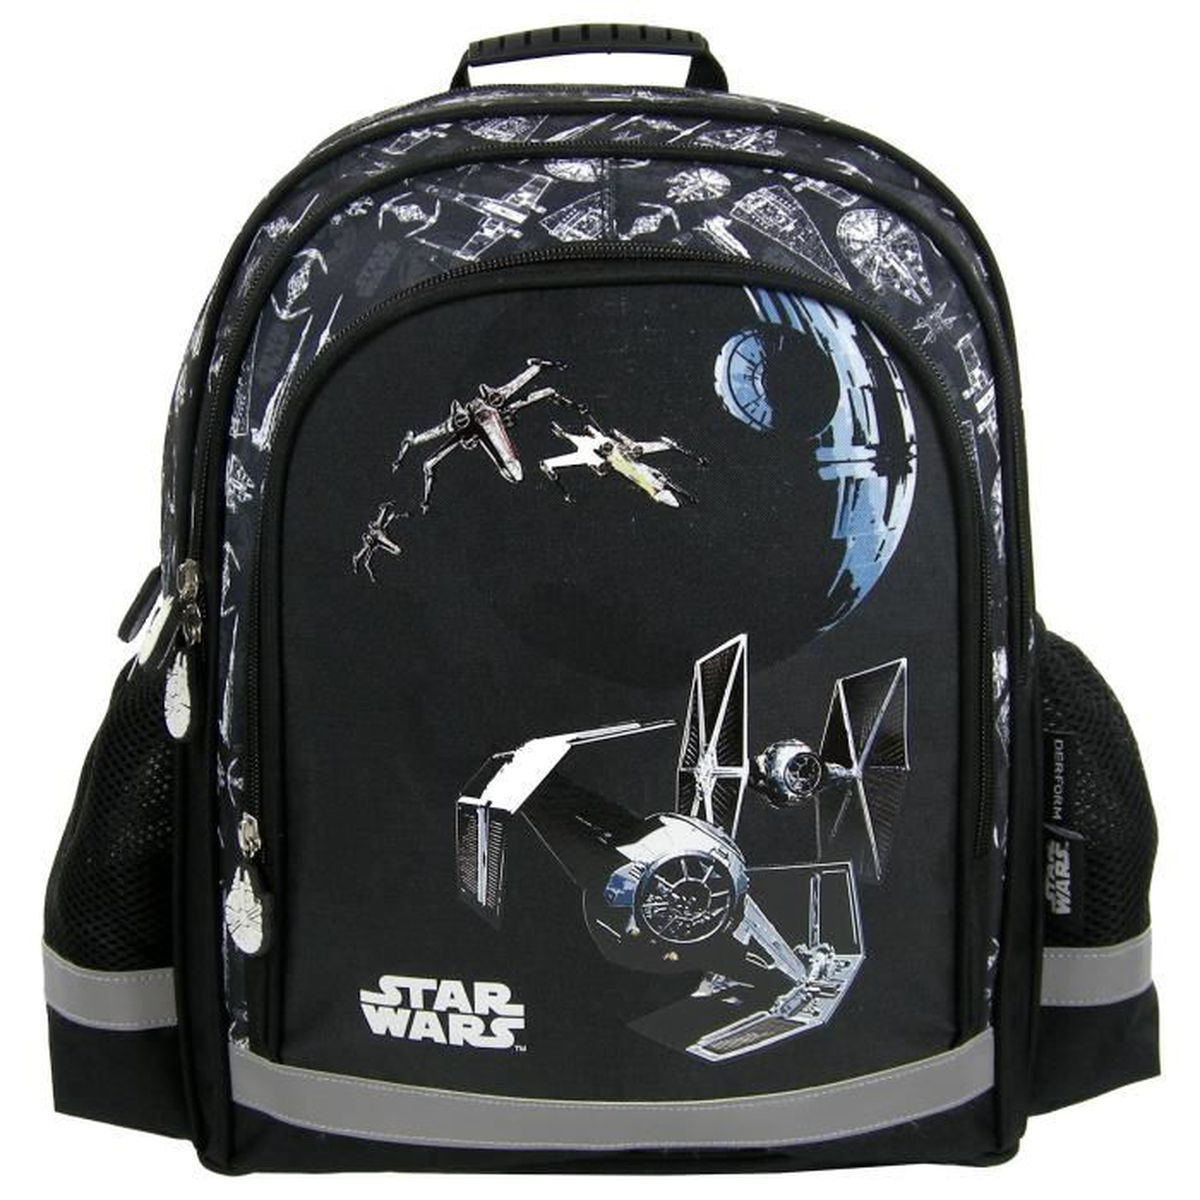 star wars grand sac a dos cartable cole loisirs extrascolaires sport vaisseau x wing. Black Bedroom Furniture Sets. Home Design Ideas